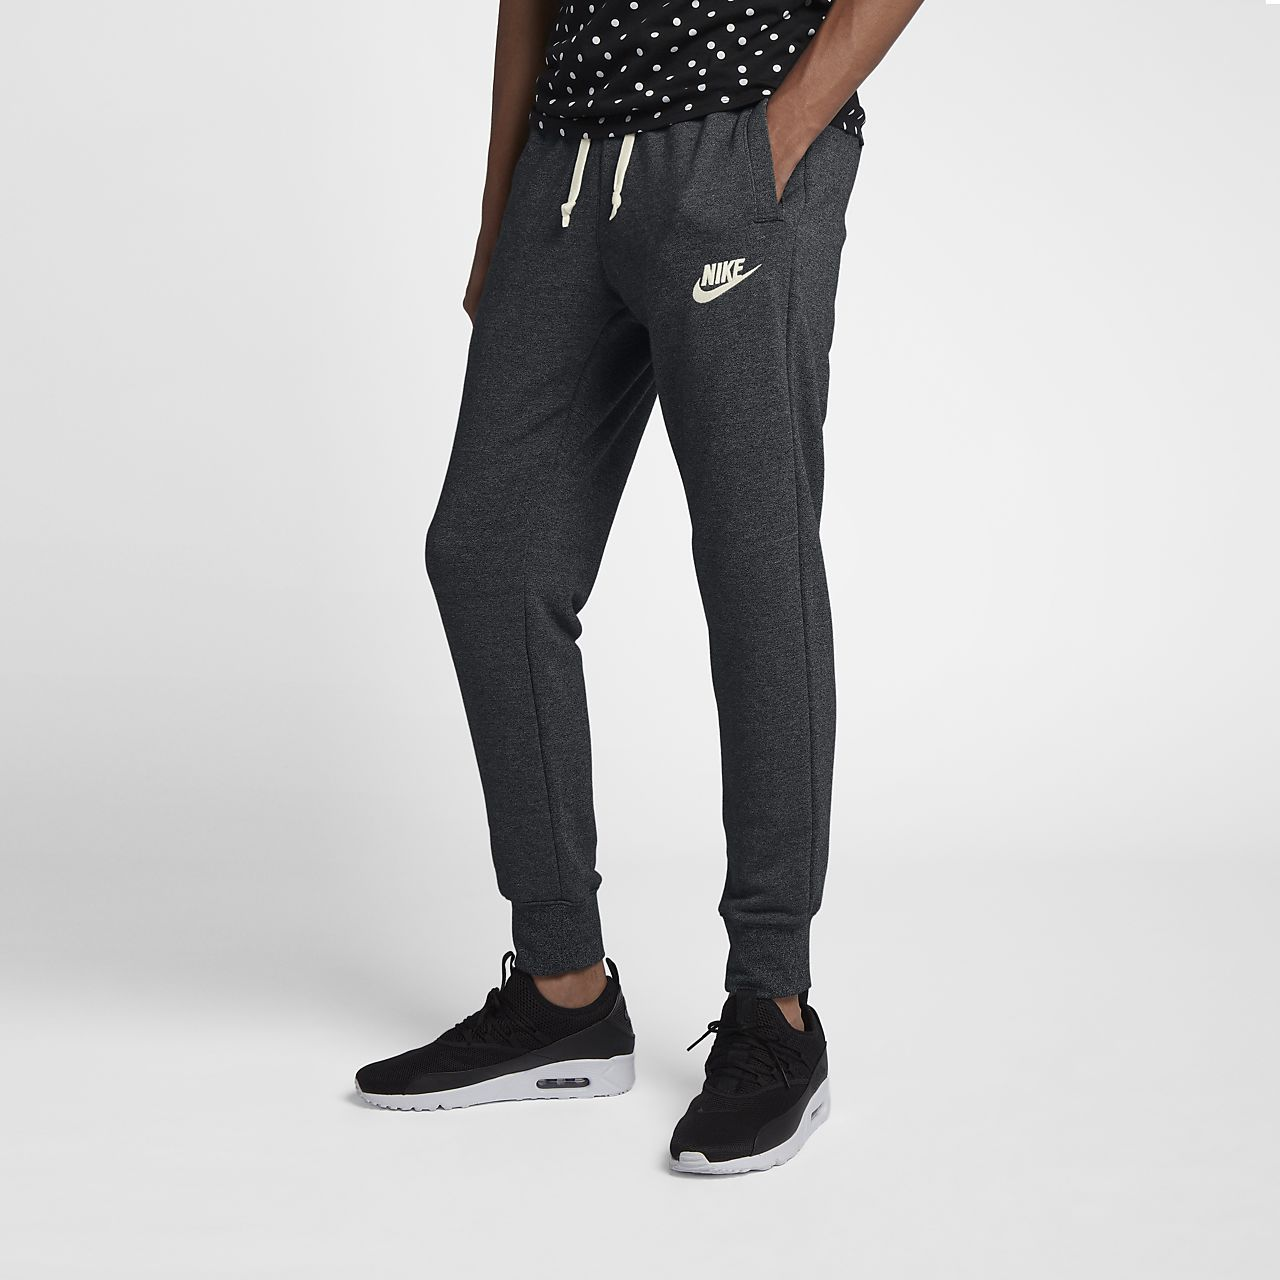 detailed look 5311f 7cf05 Low Resolution Nike Sportswear Heritage Men s Joggers Nike Sportswear  Heritage Men s Joggers